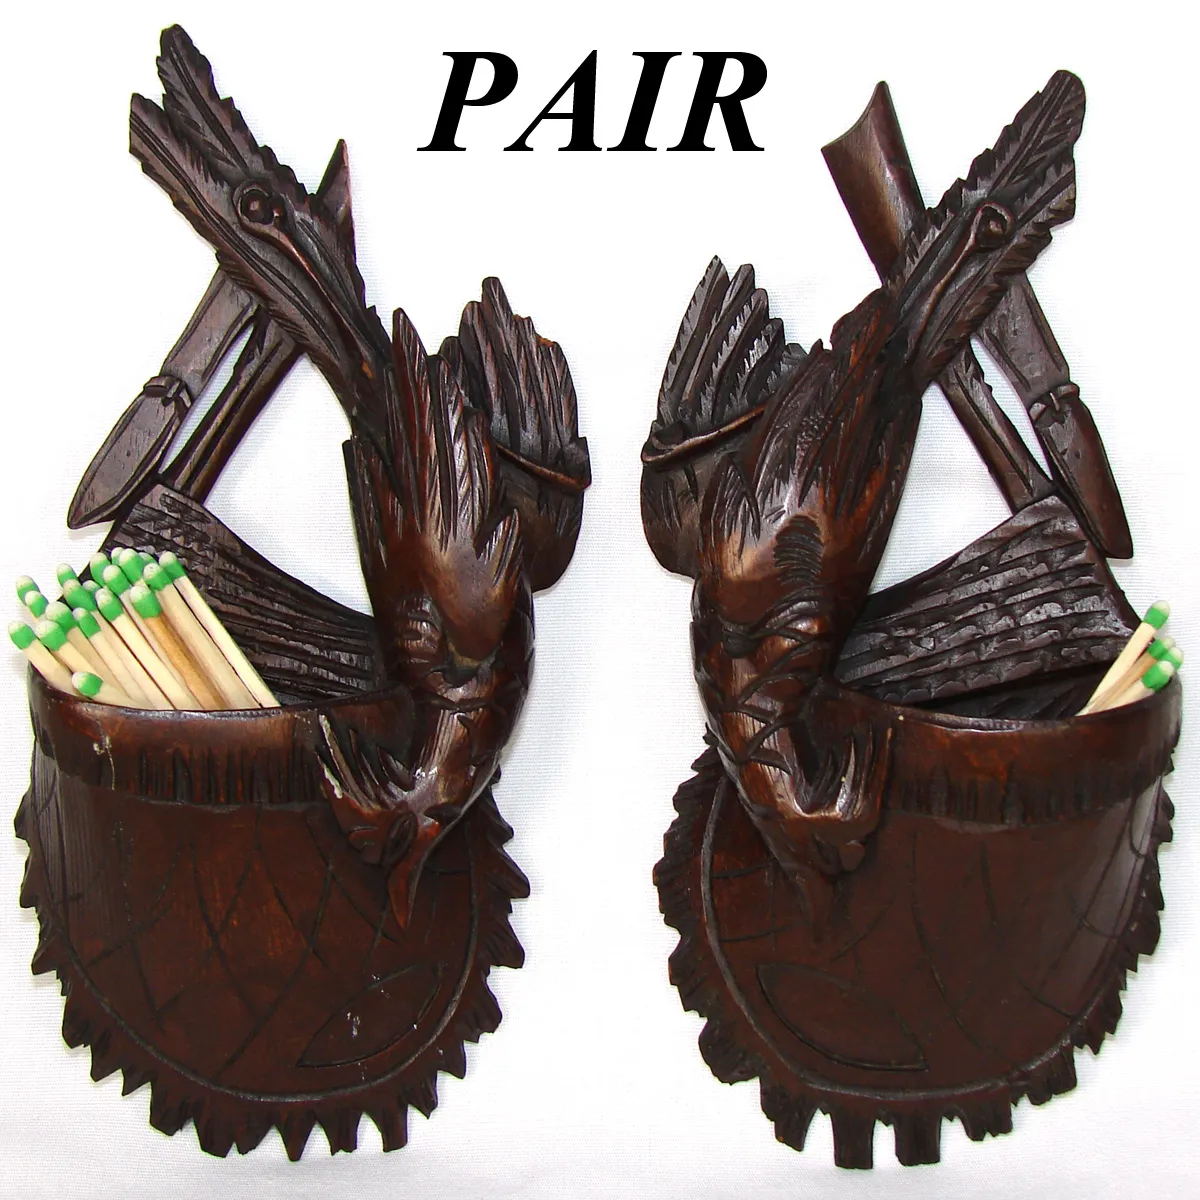 PAIR: Antique Black Forest Hunt Match or Toothpick Holders, Game Birds, Satchels